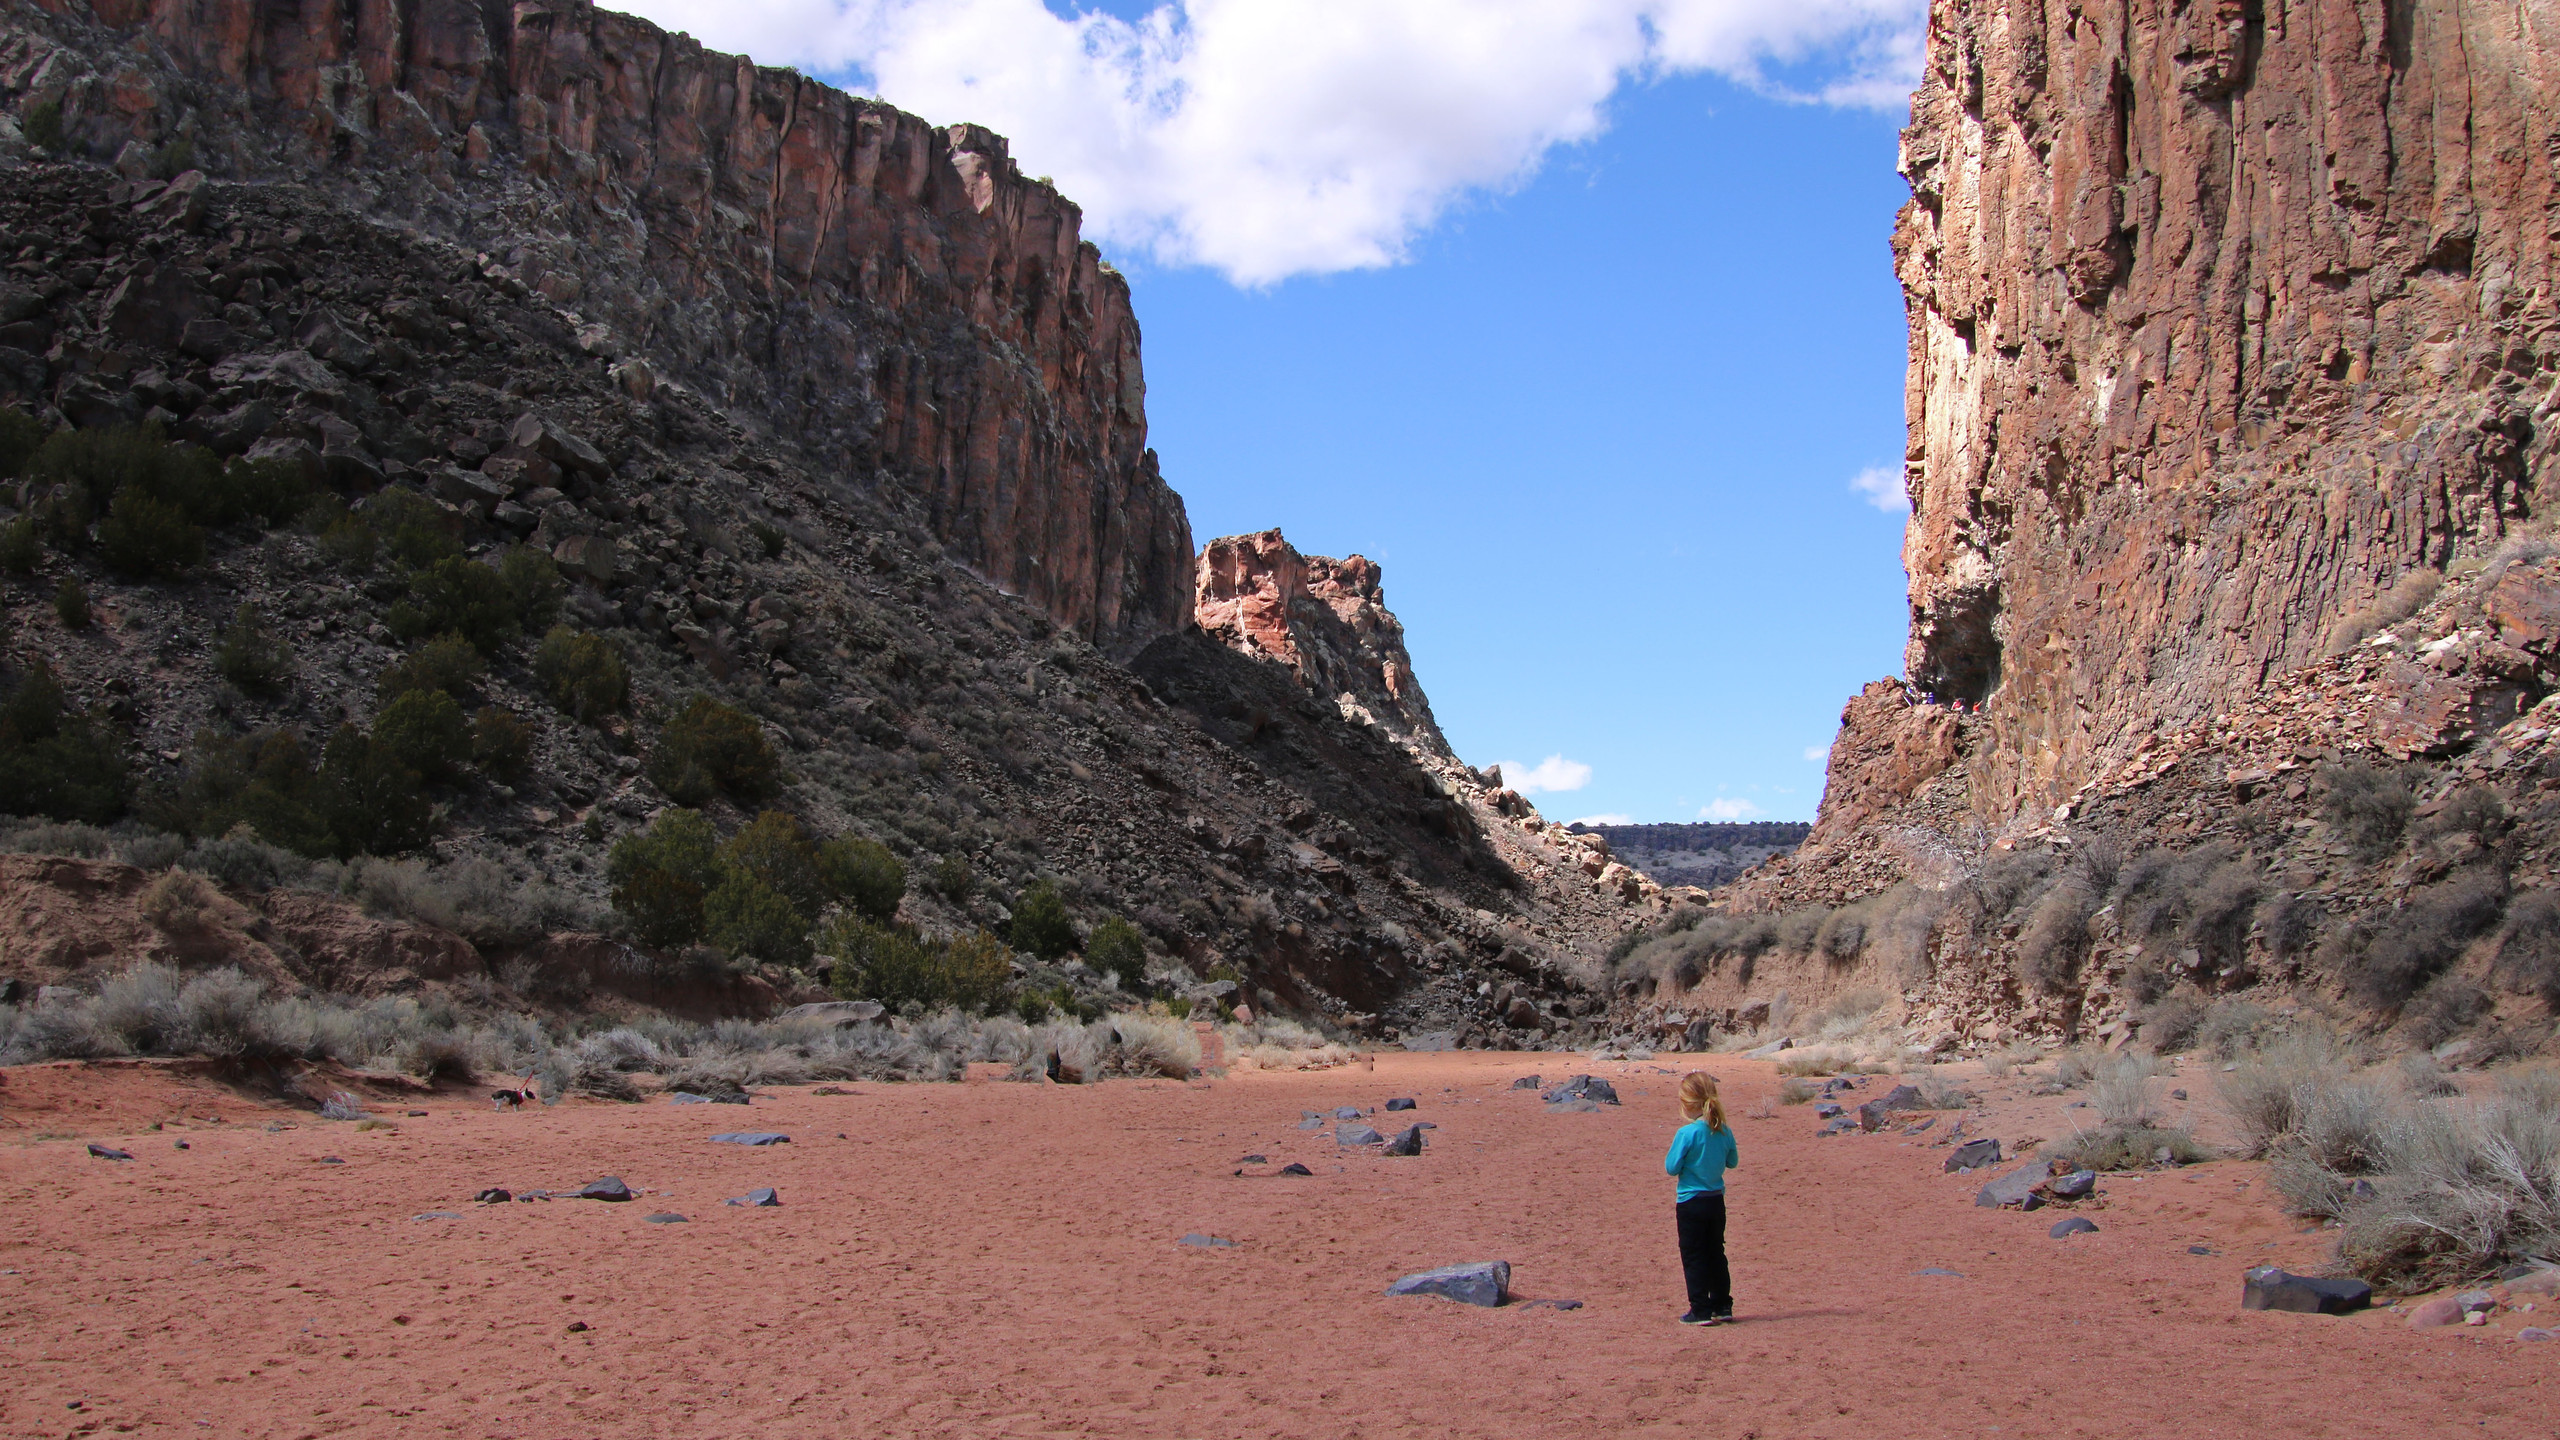 Little boy in blue shirt at the red base of Diablo Canyon in Santa Fe, New